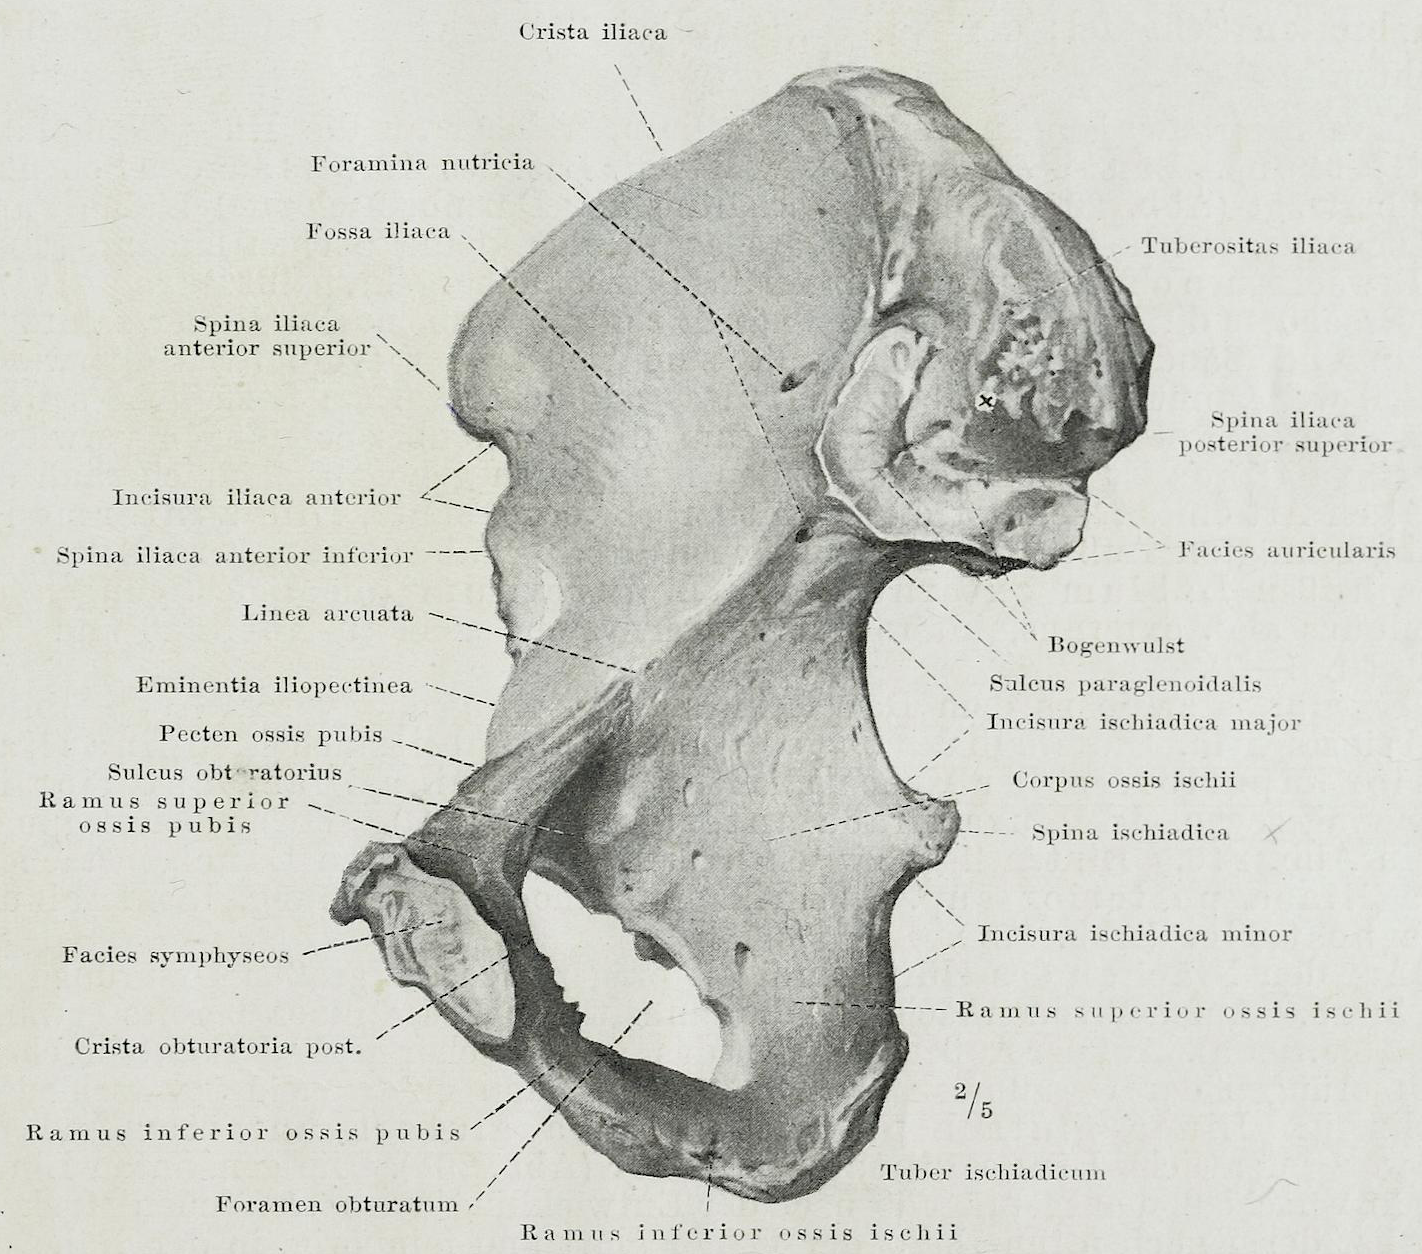 File:Braus 1921 228.png - Wikimedia Commons